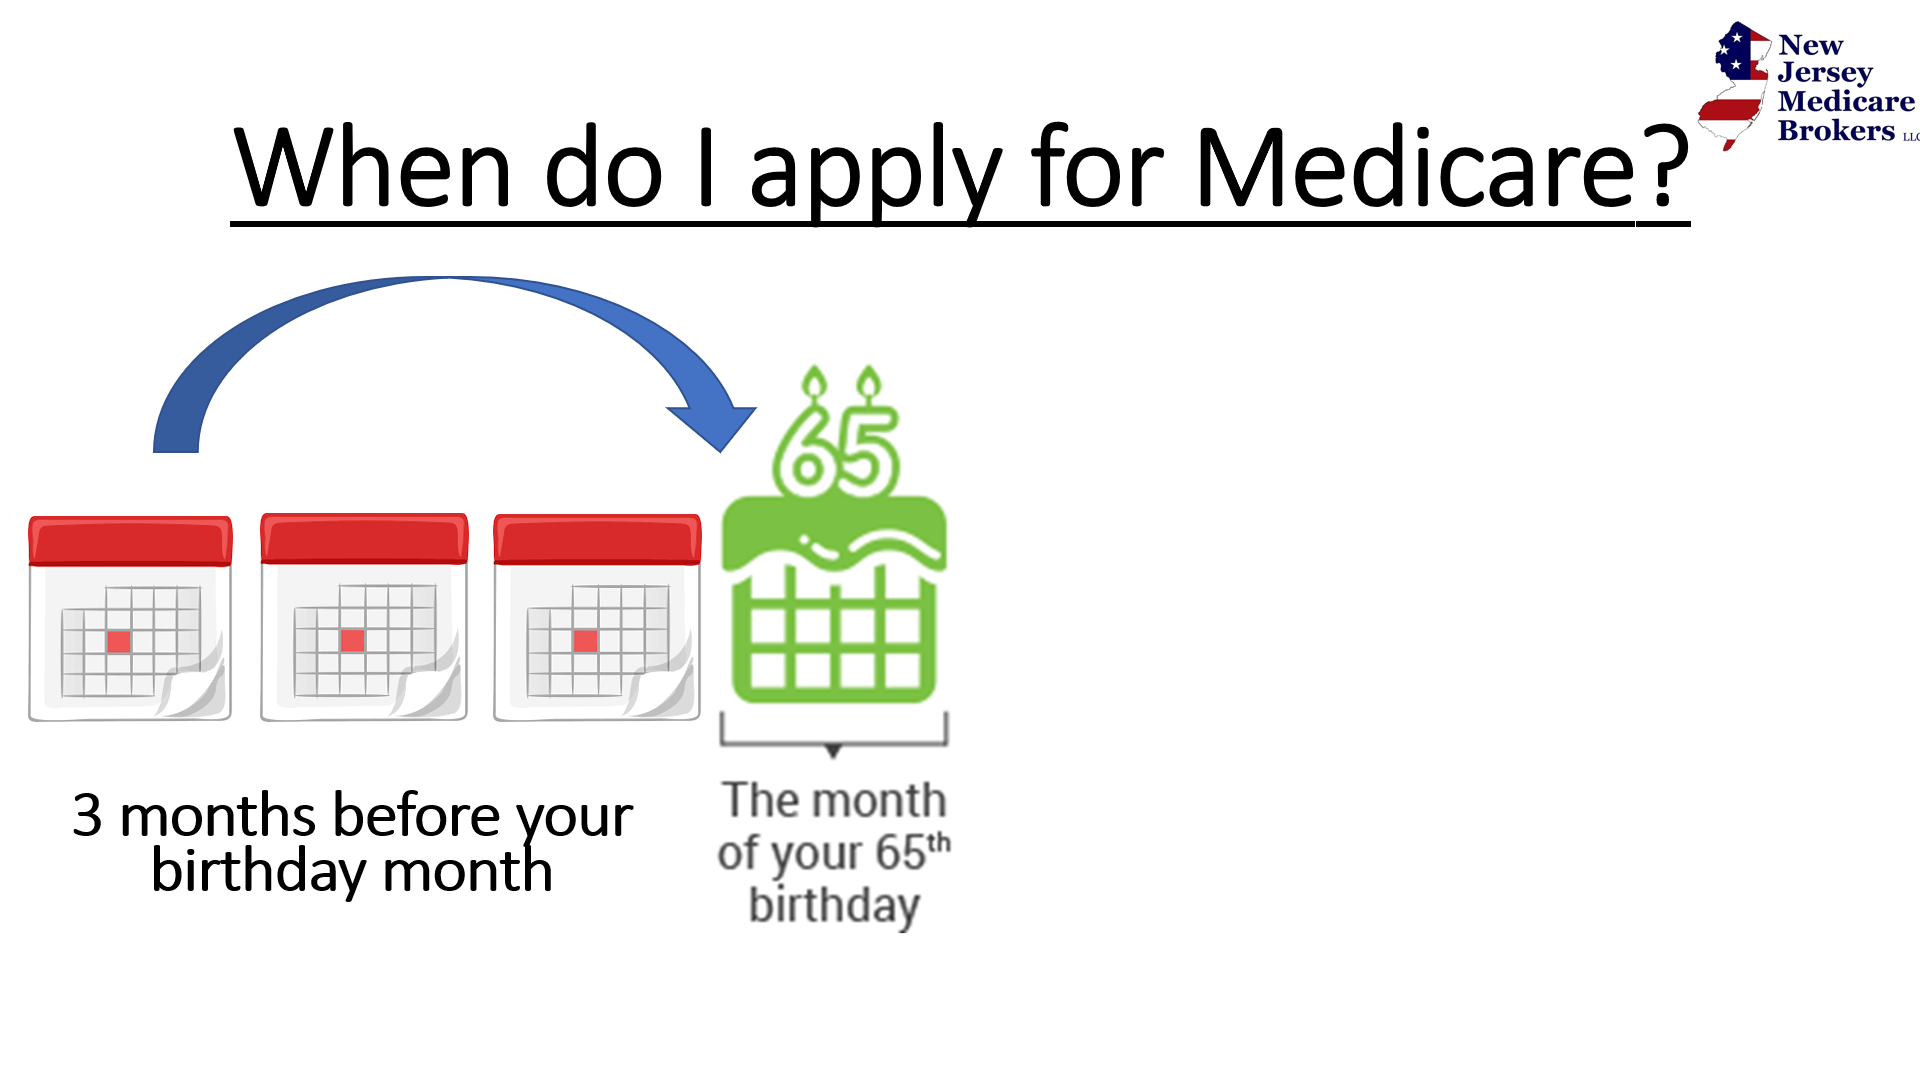 Medicare starts on birthday month if you apply before birthday mont